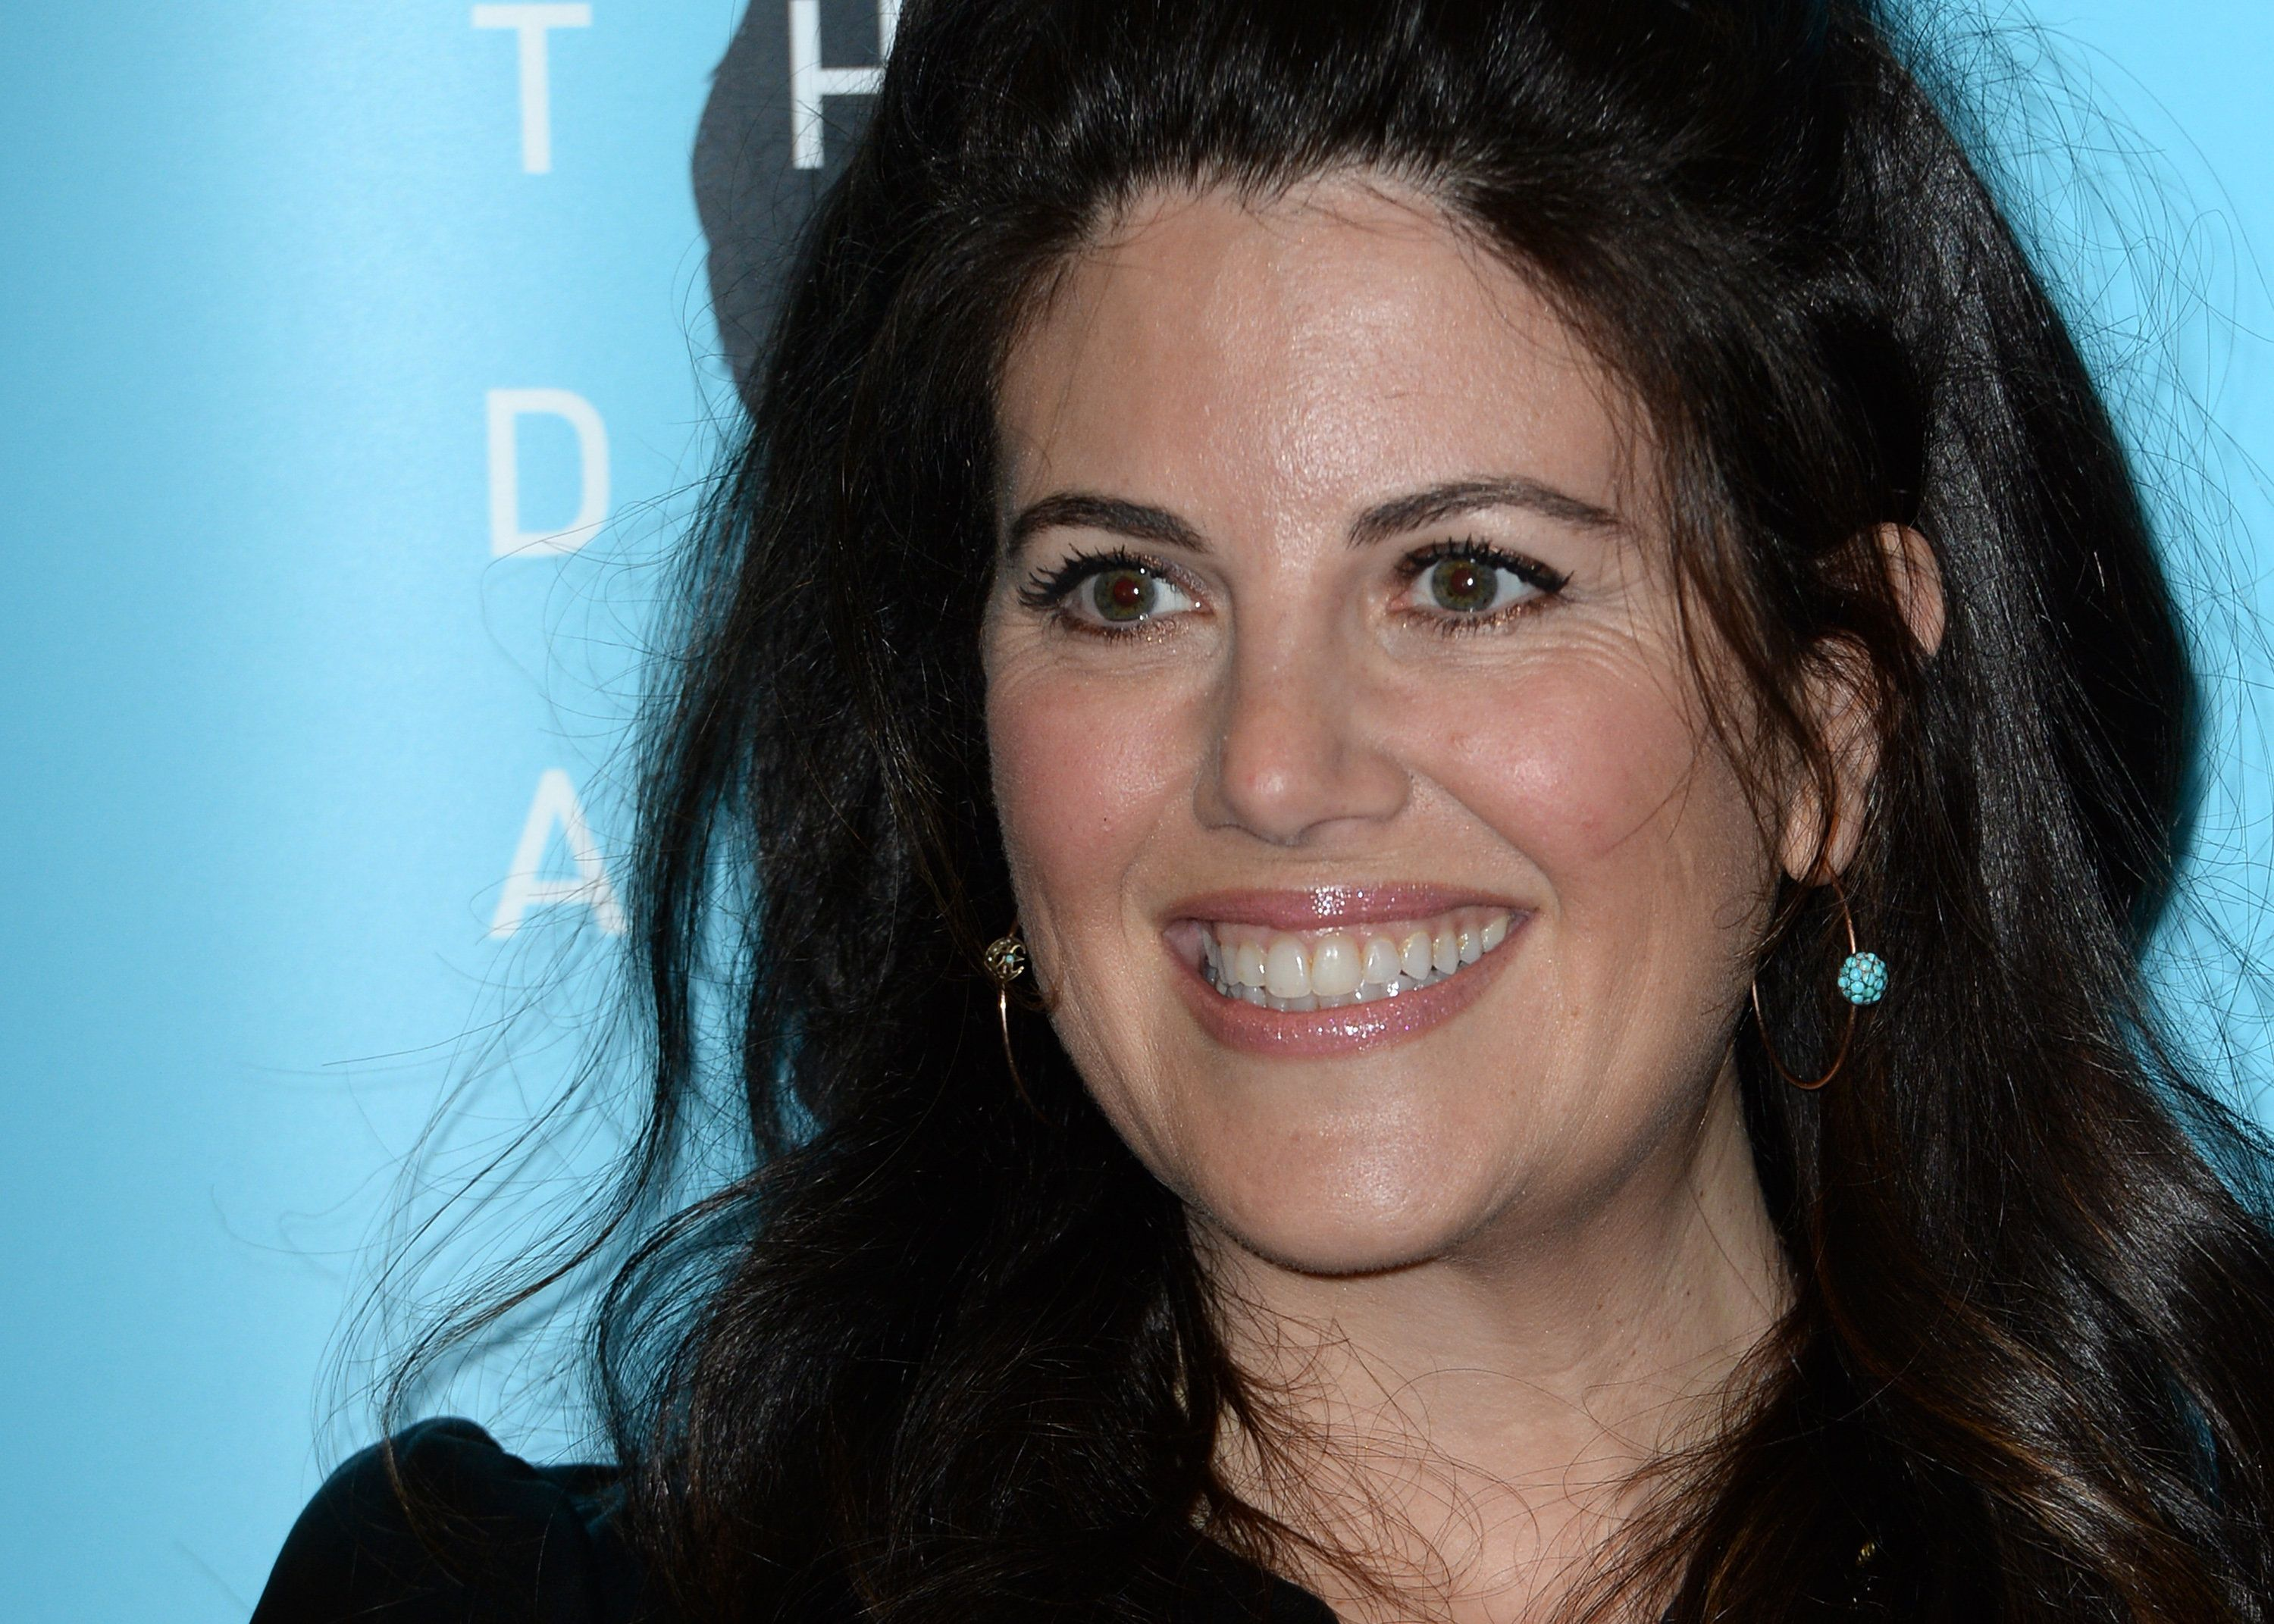 LONDON, ENGLAND - NOVEMBER 13:  Monica Lewinsky during an anti-bullying campagin photocall at Alexandra Palace on November 13, 2017 in London, England.  (Photo by Eamonn M. McCormack/Getty Images)